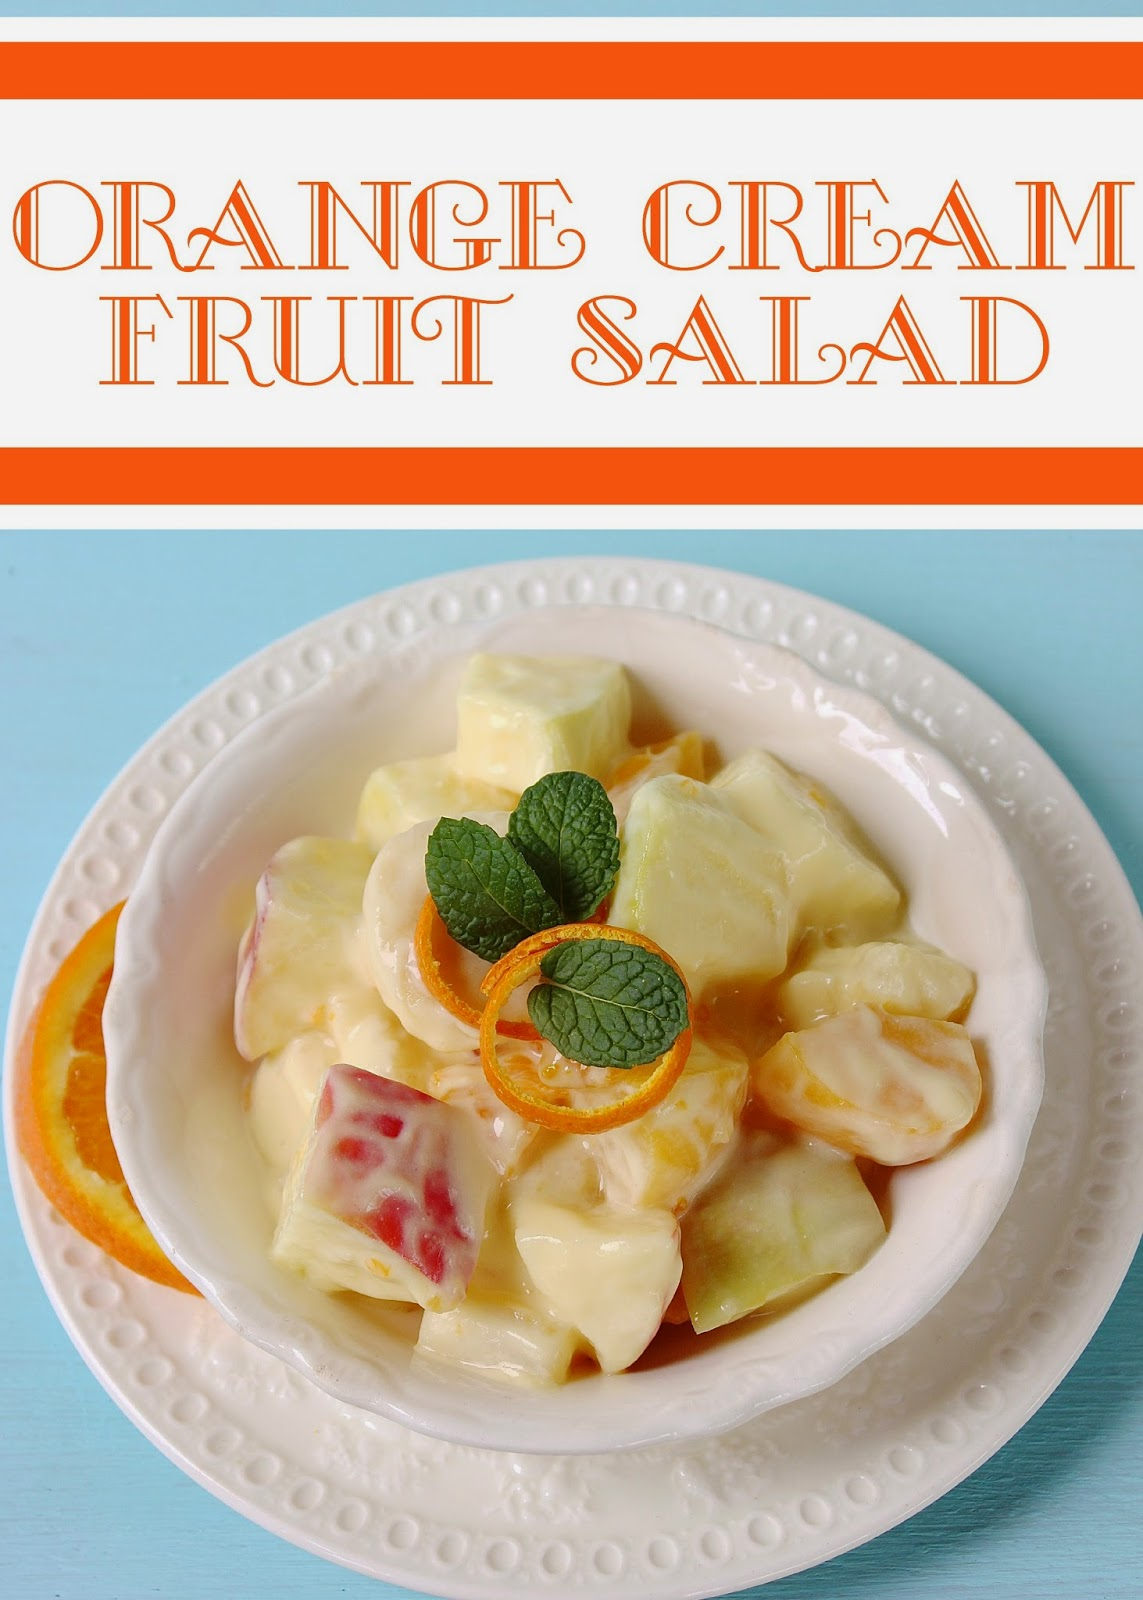 Fruit Salad with Citrus Cream Sauce